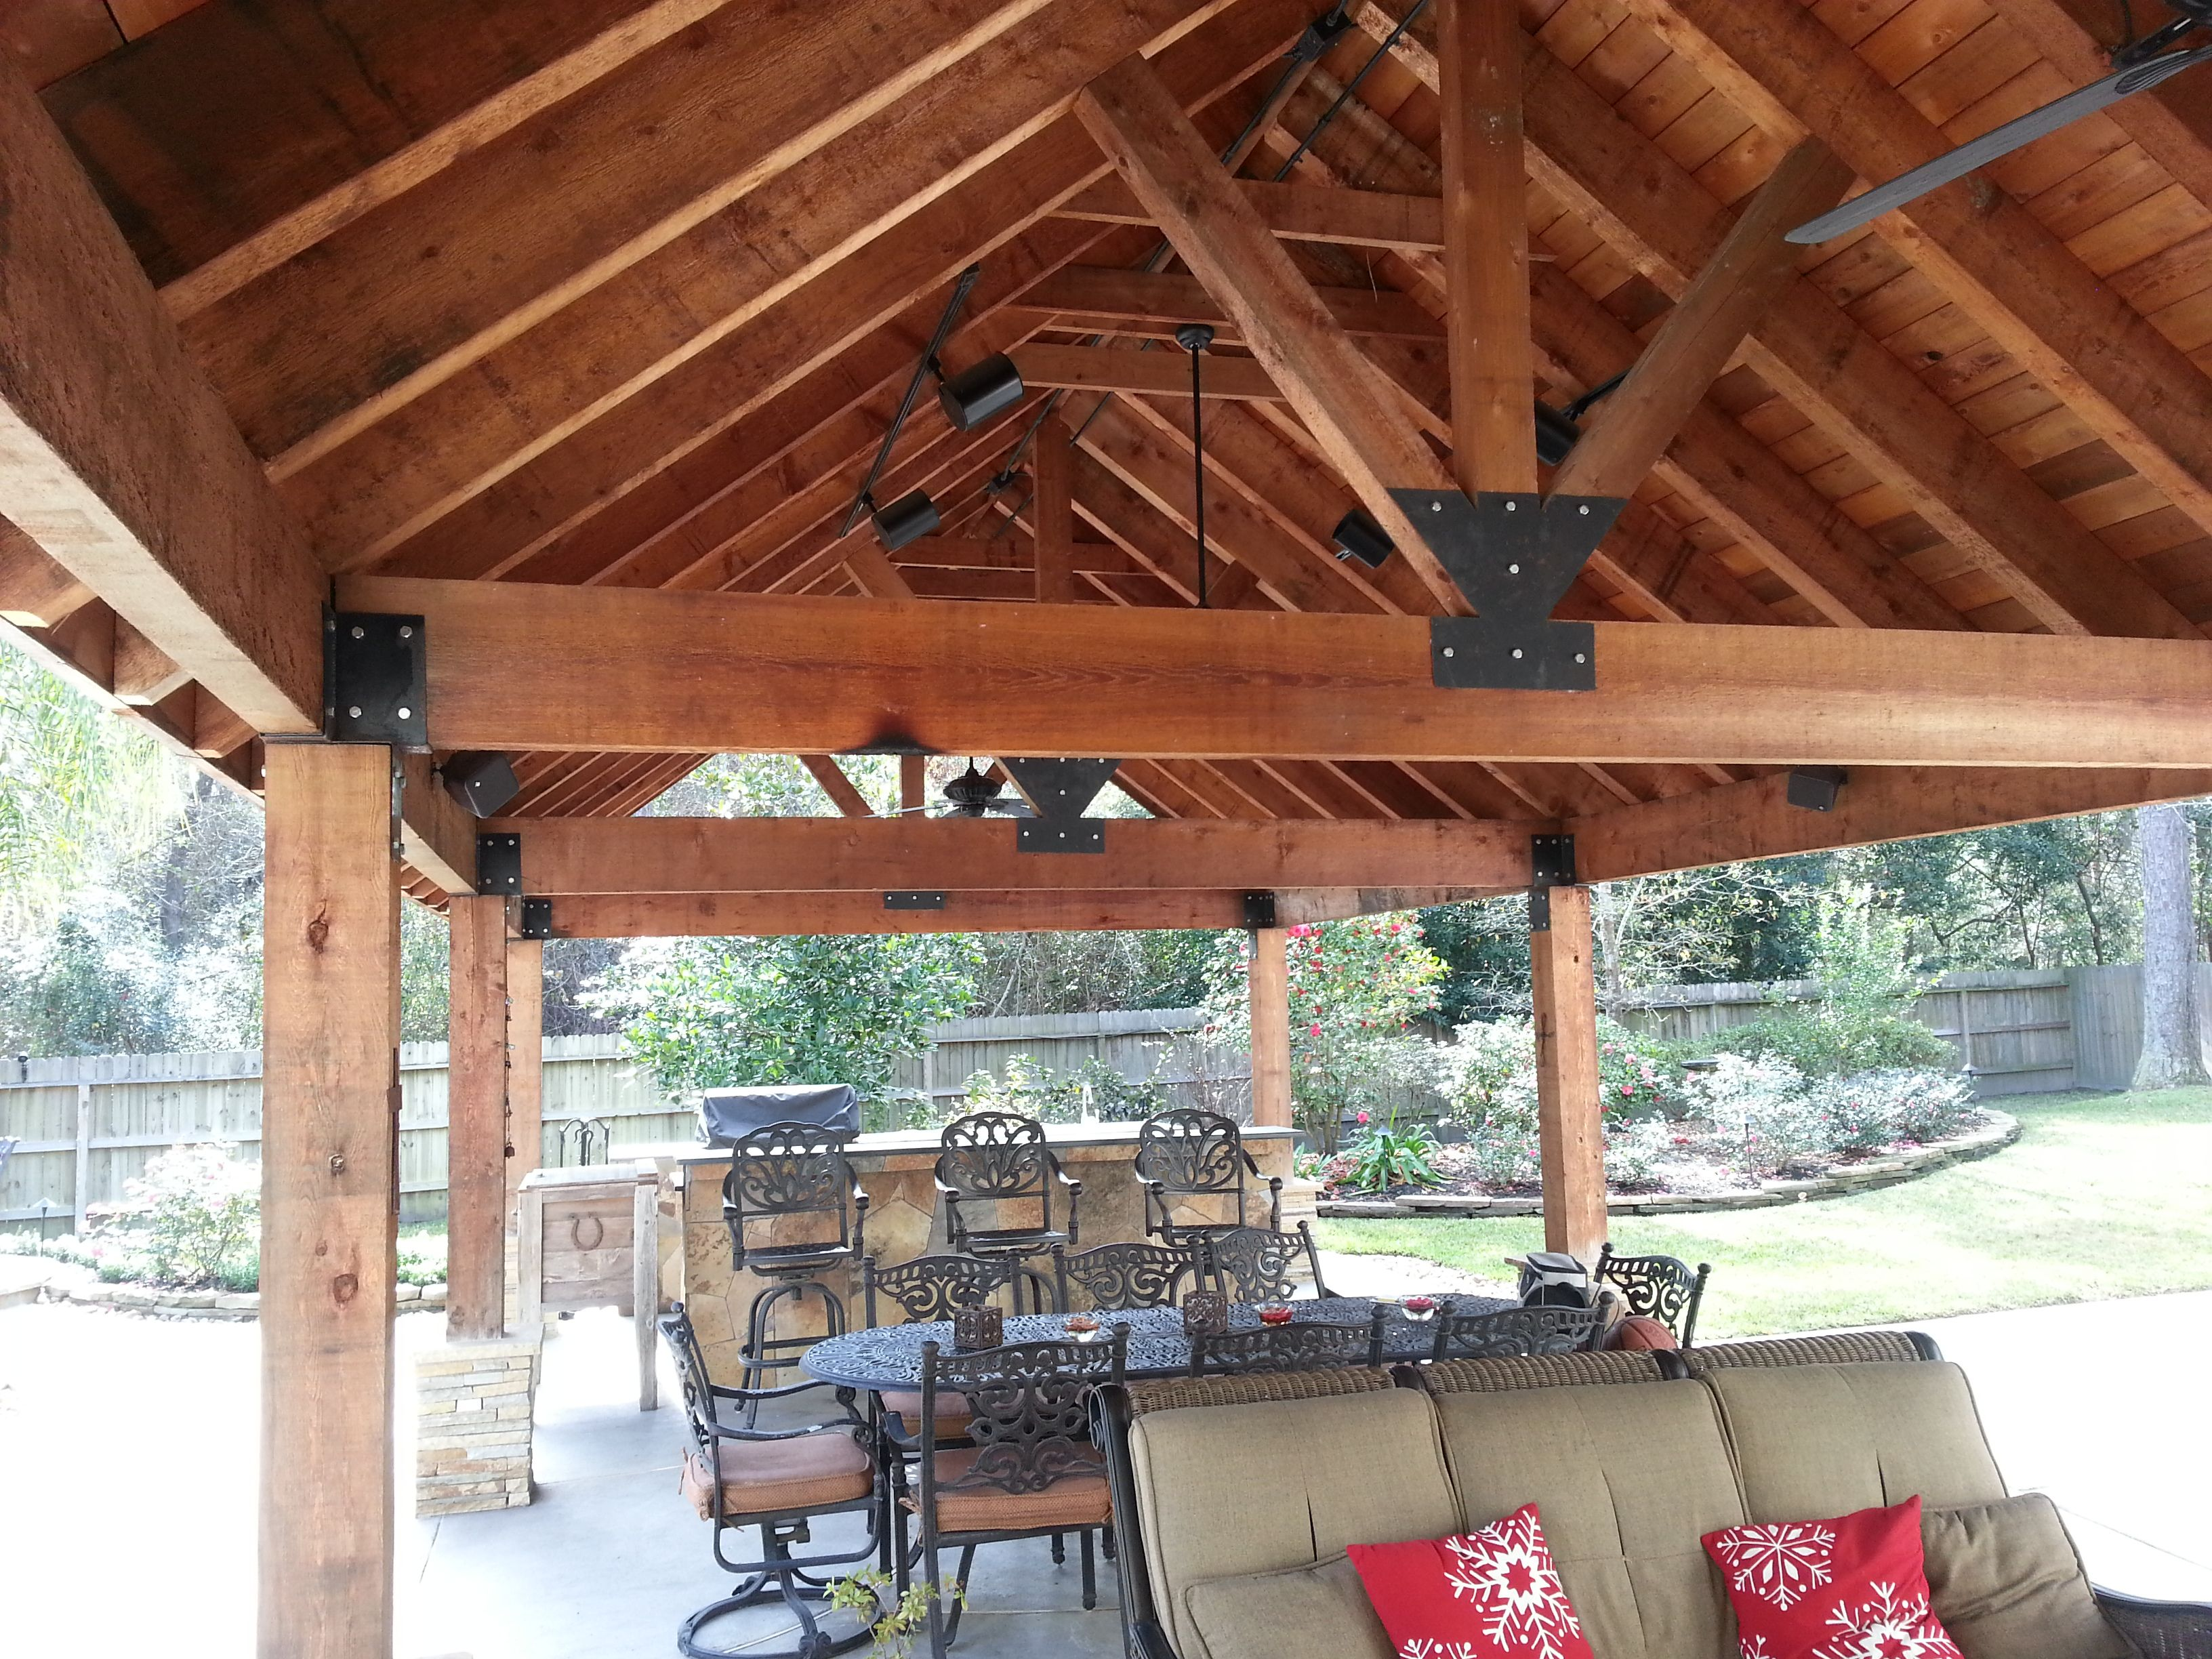 Turn Your Backyard into a Summer Hot Spot with an Outdoor ... on Backyard Renovation Companies id=54960